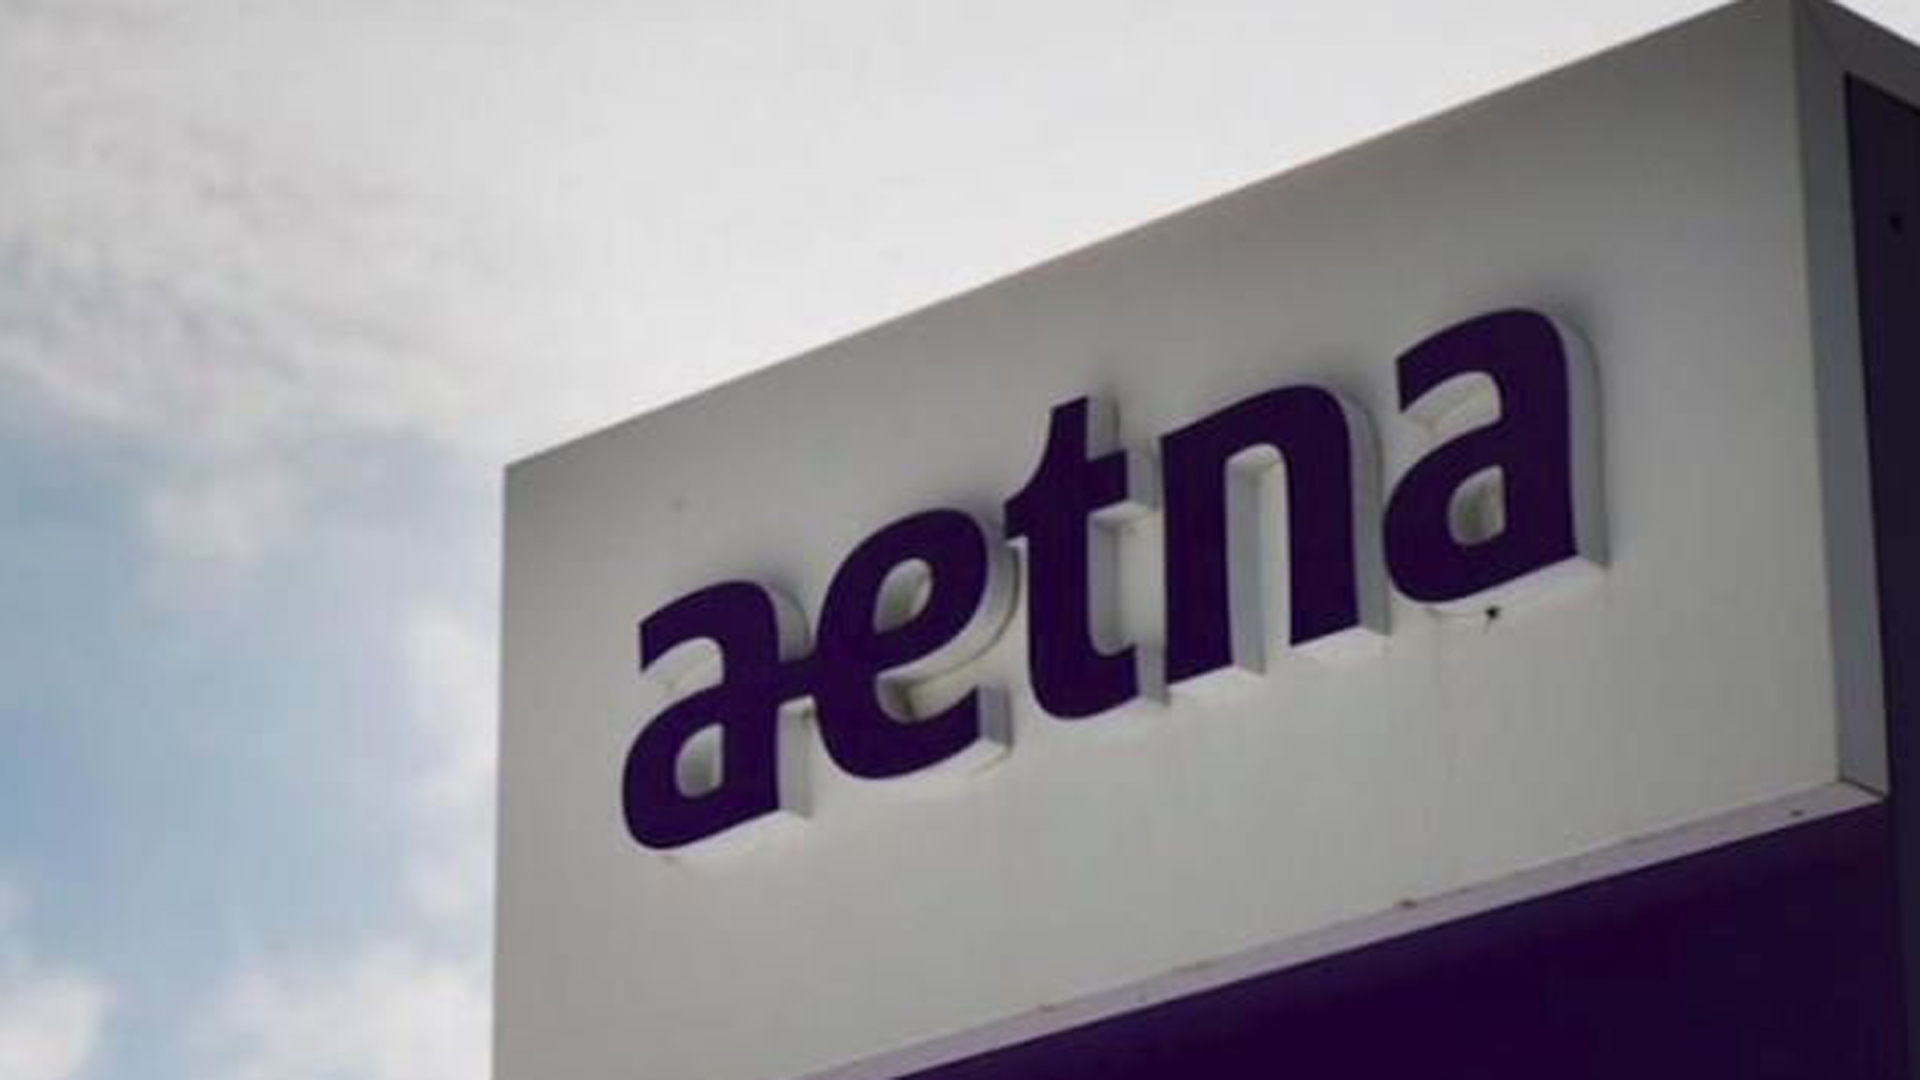 California's insurance commissioner has launched an investigation into Aetna after learning a former medical director for the insurer admitted under oath he never looked at patients' records when deciding whether to approve or deny care. (Credit: Getty Images via CNN)